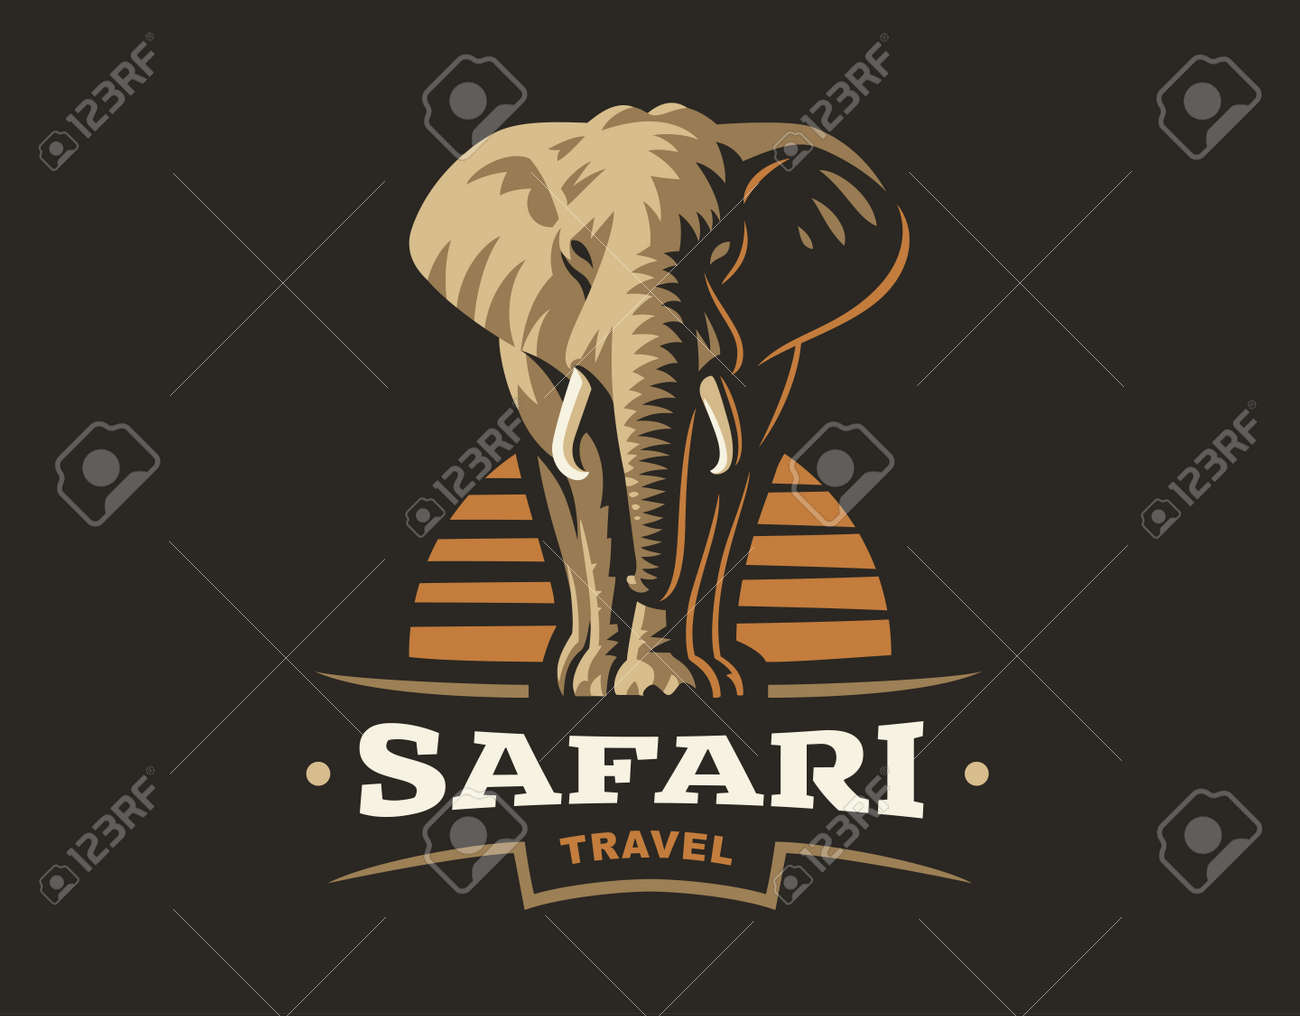 african safari elephant logo illustration emblem design on dark